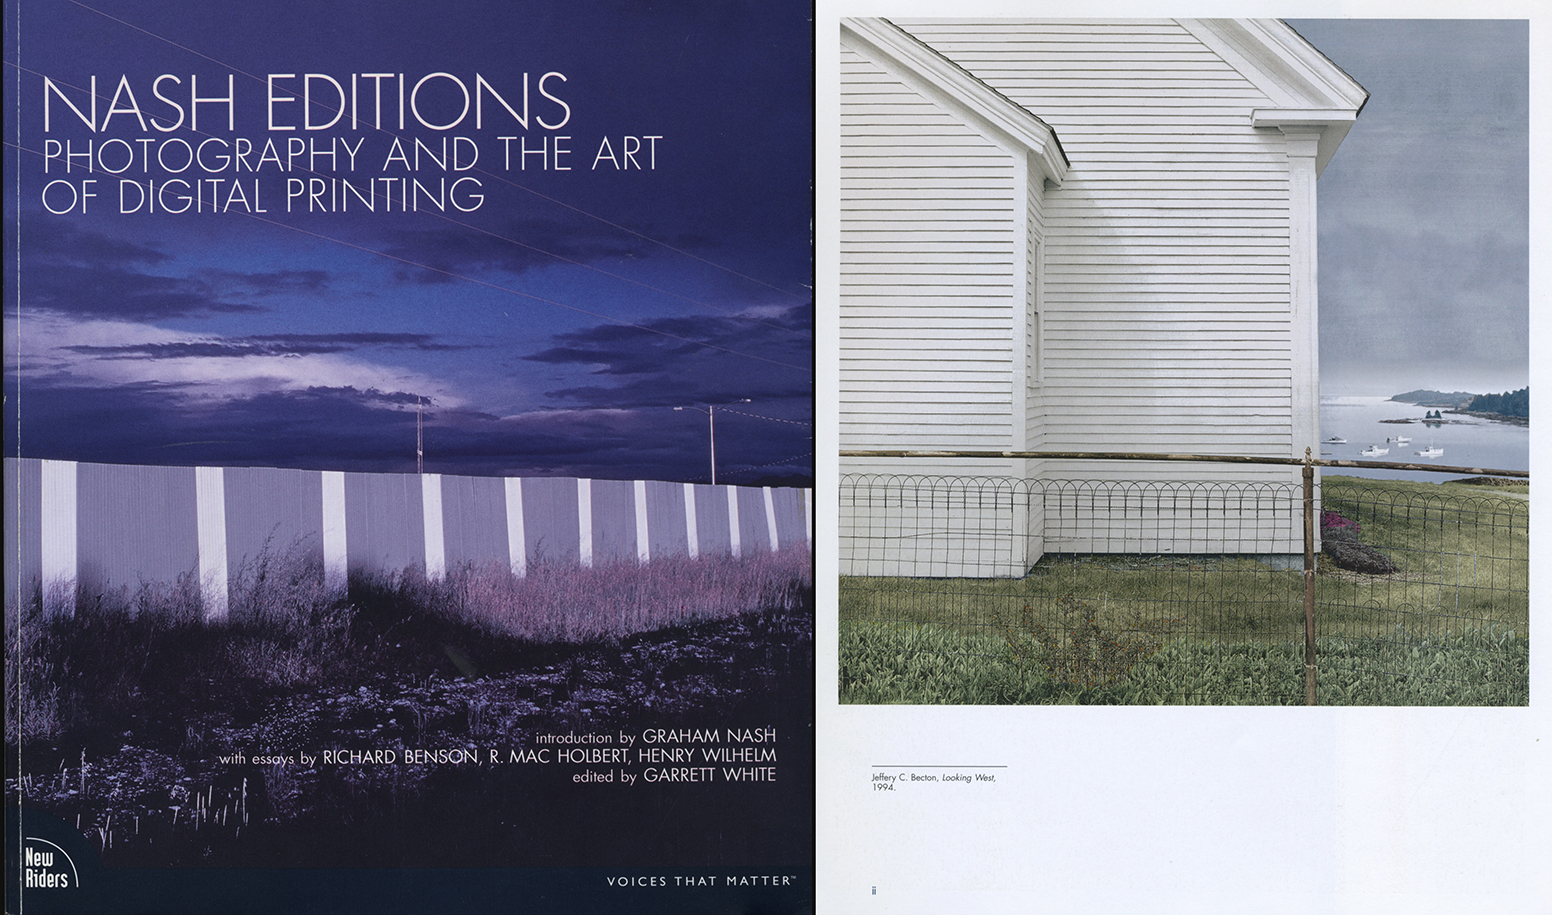 """left NASH EDITIONS Photography and the Art of Digital Printing, publ. 2007 by New Riders, Berkeley CA right, inside cover, """"Looking West"""", 1994, Jeffery C. Becton Digital print"""